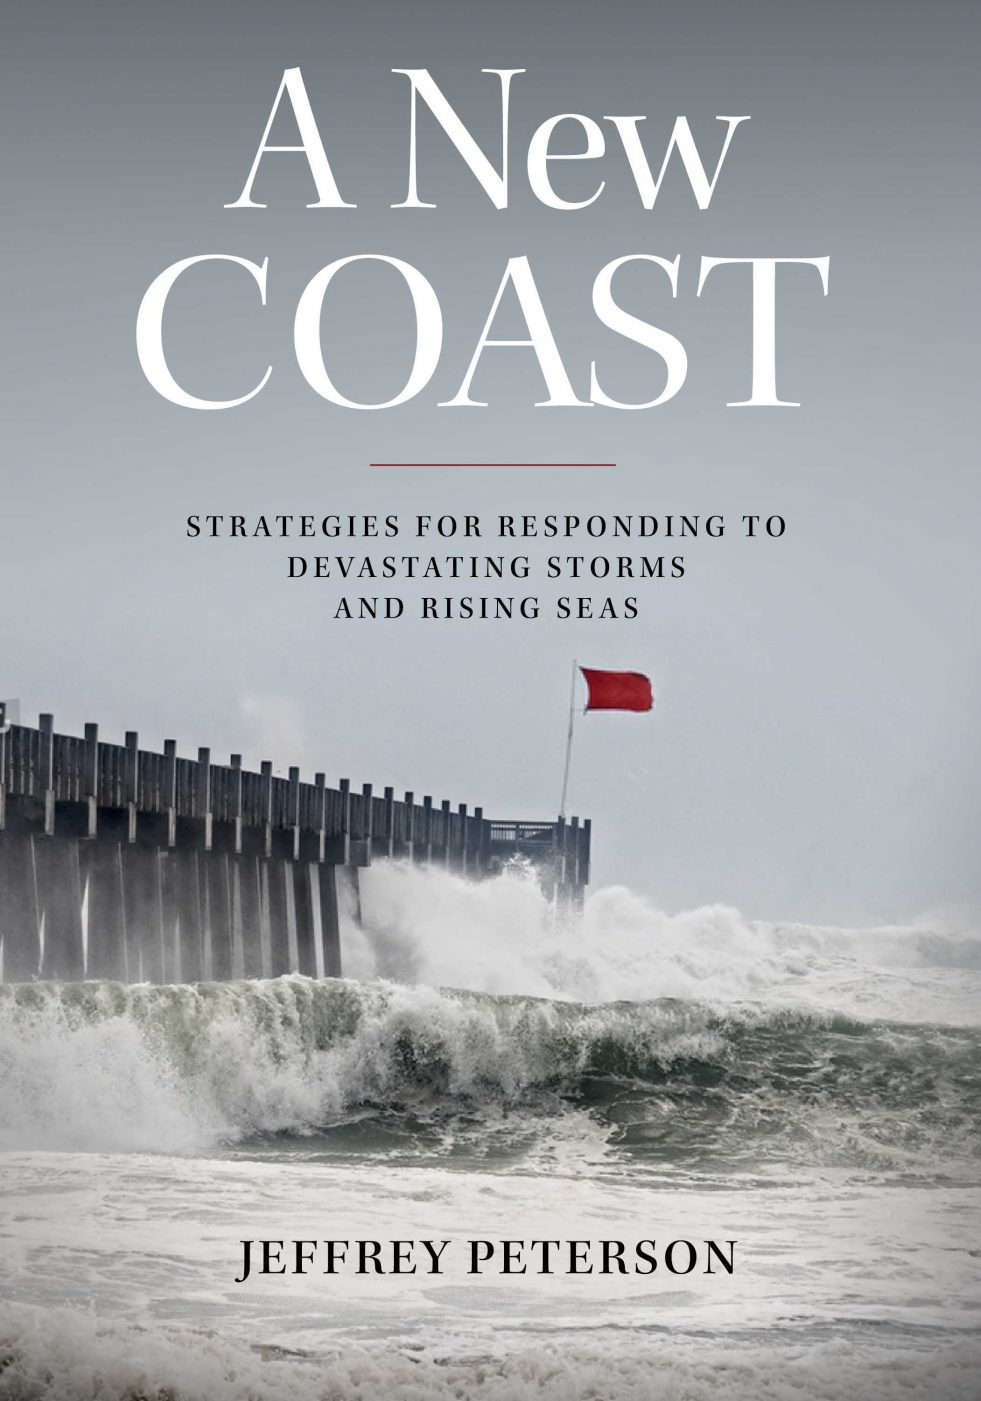 A New Coast - Strategies for Responding to Devastating Storms and Rising Seas